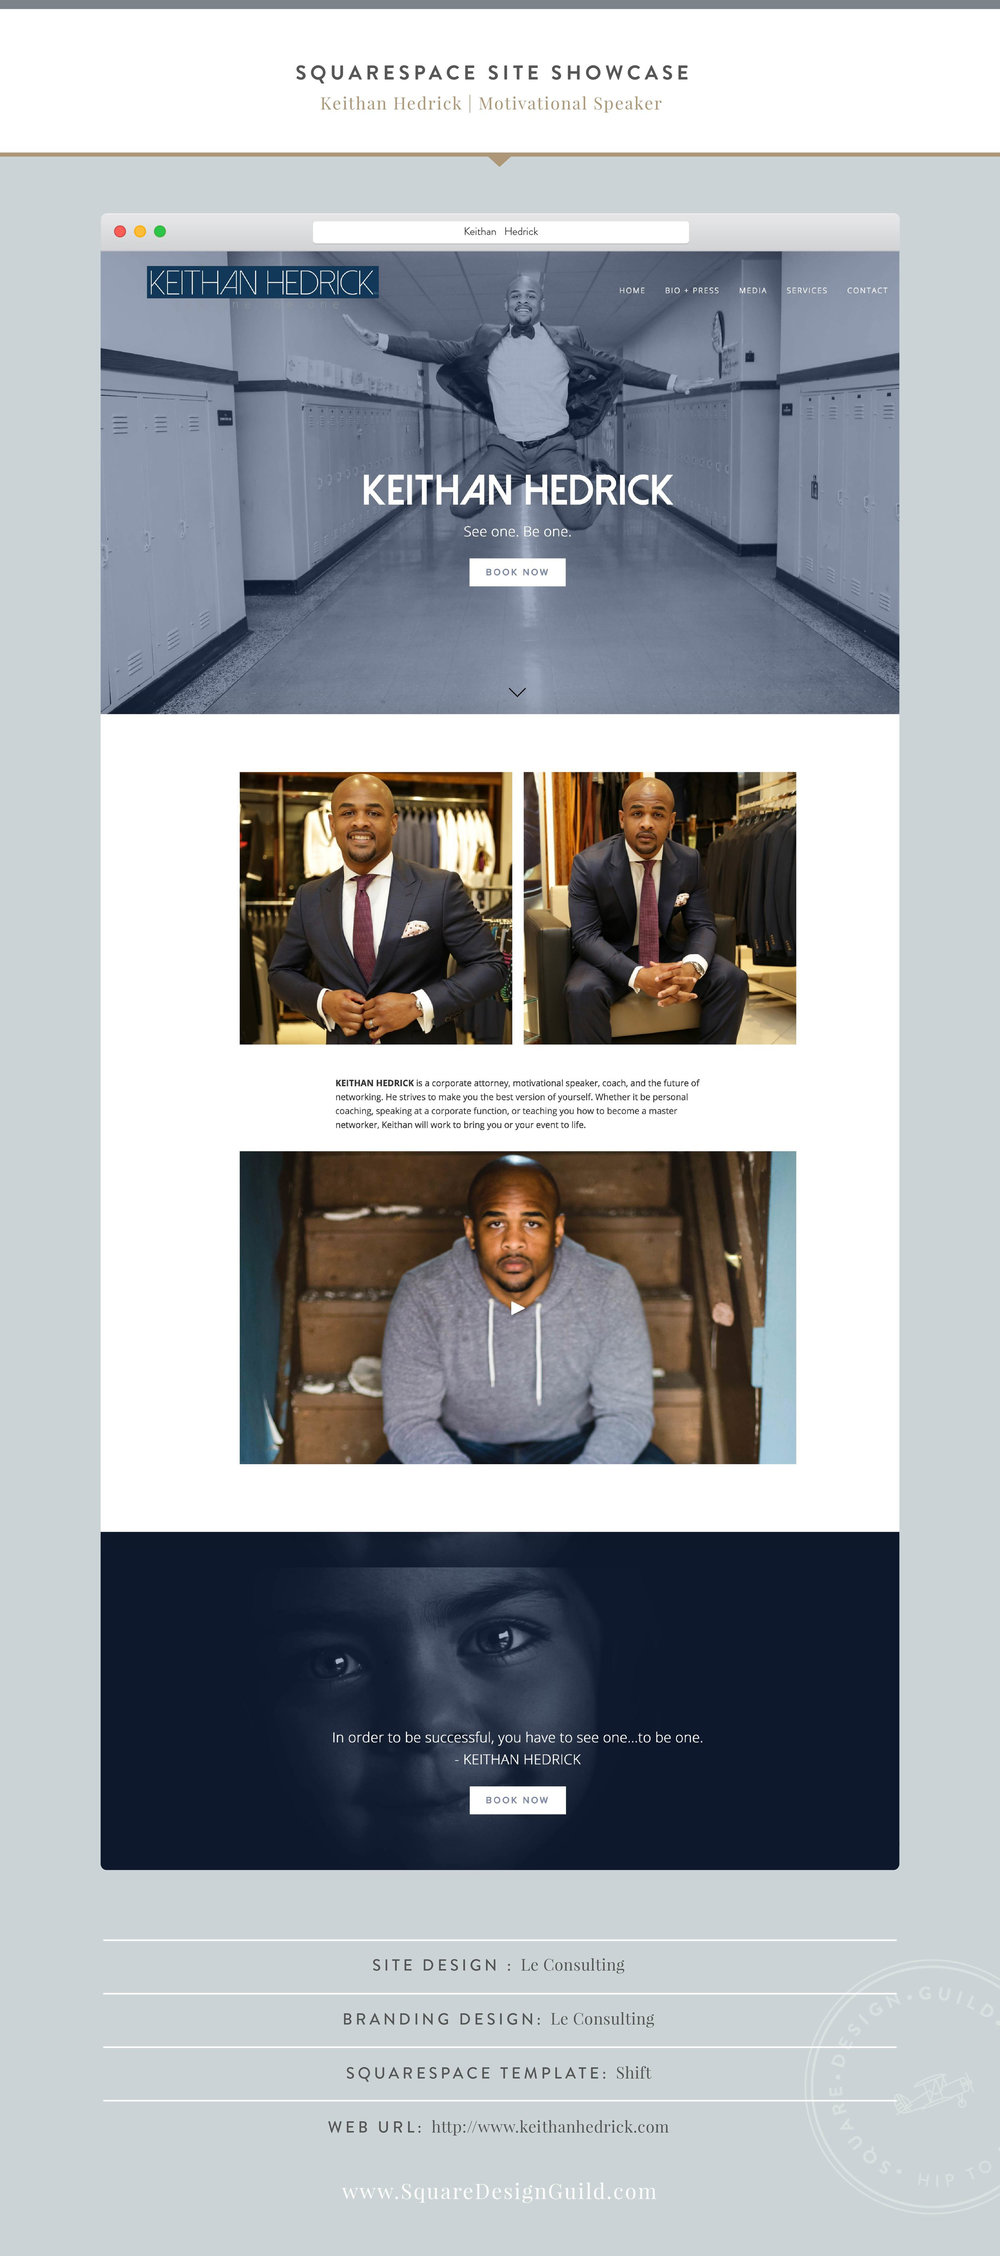 Squarespace Design Guild | Site Showcase | Keithan Hedrick by LeConsulting using Shift Template